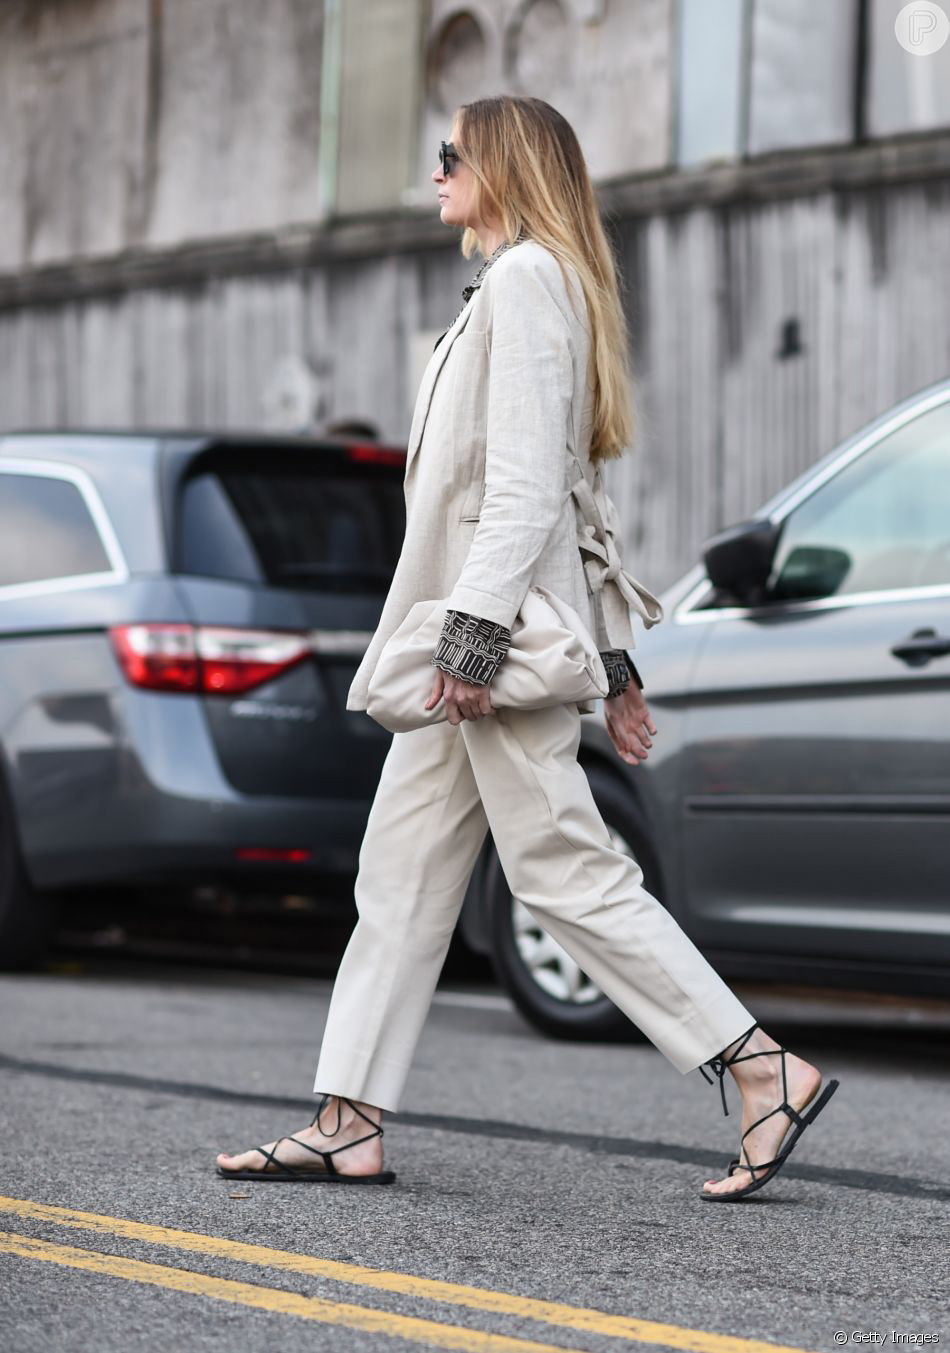 streetstyle créditos getty imagens